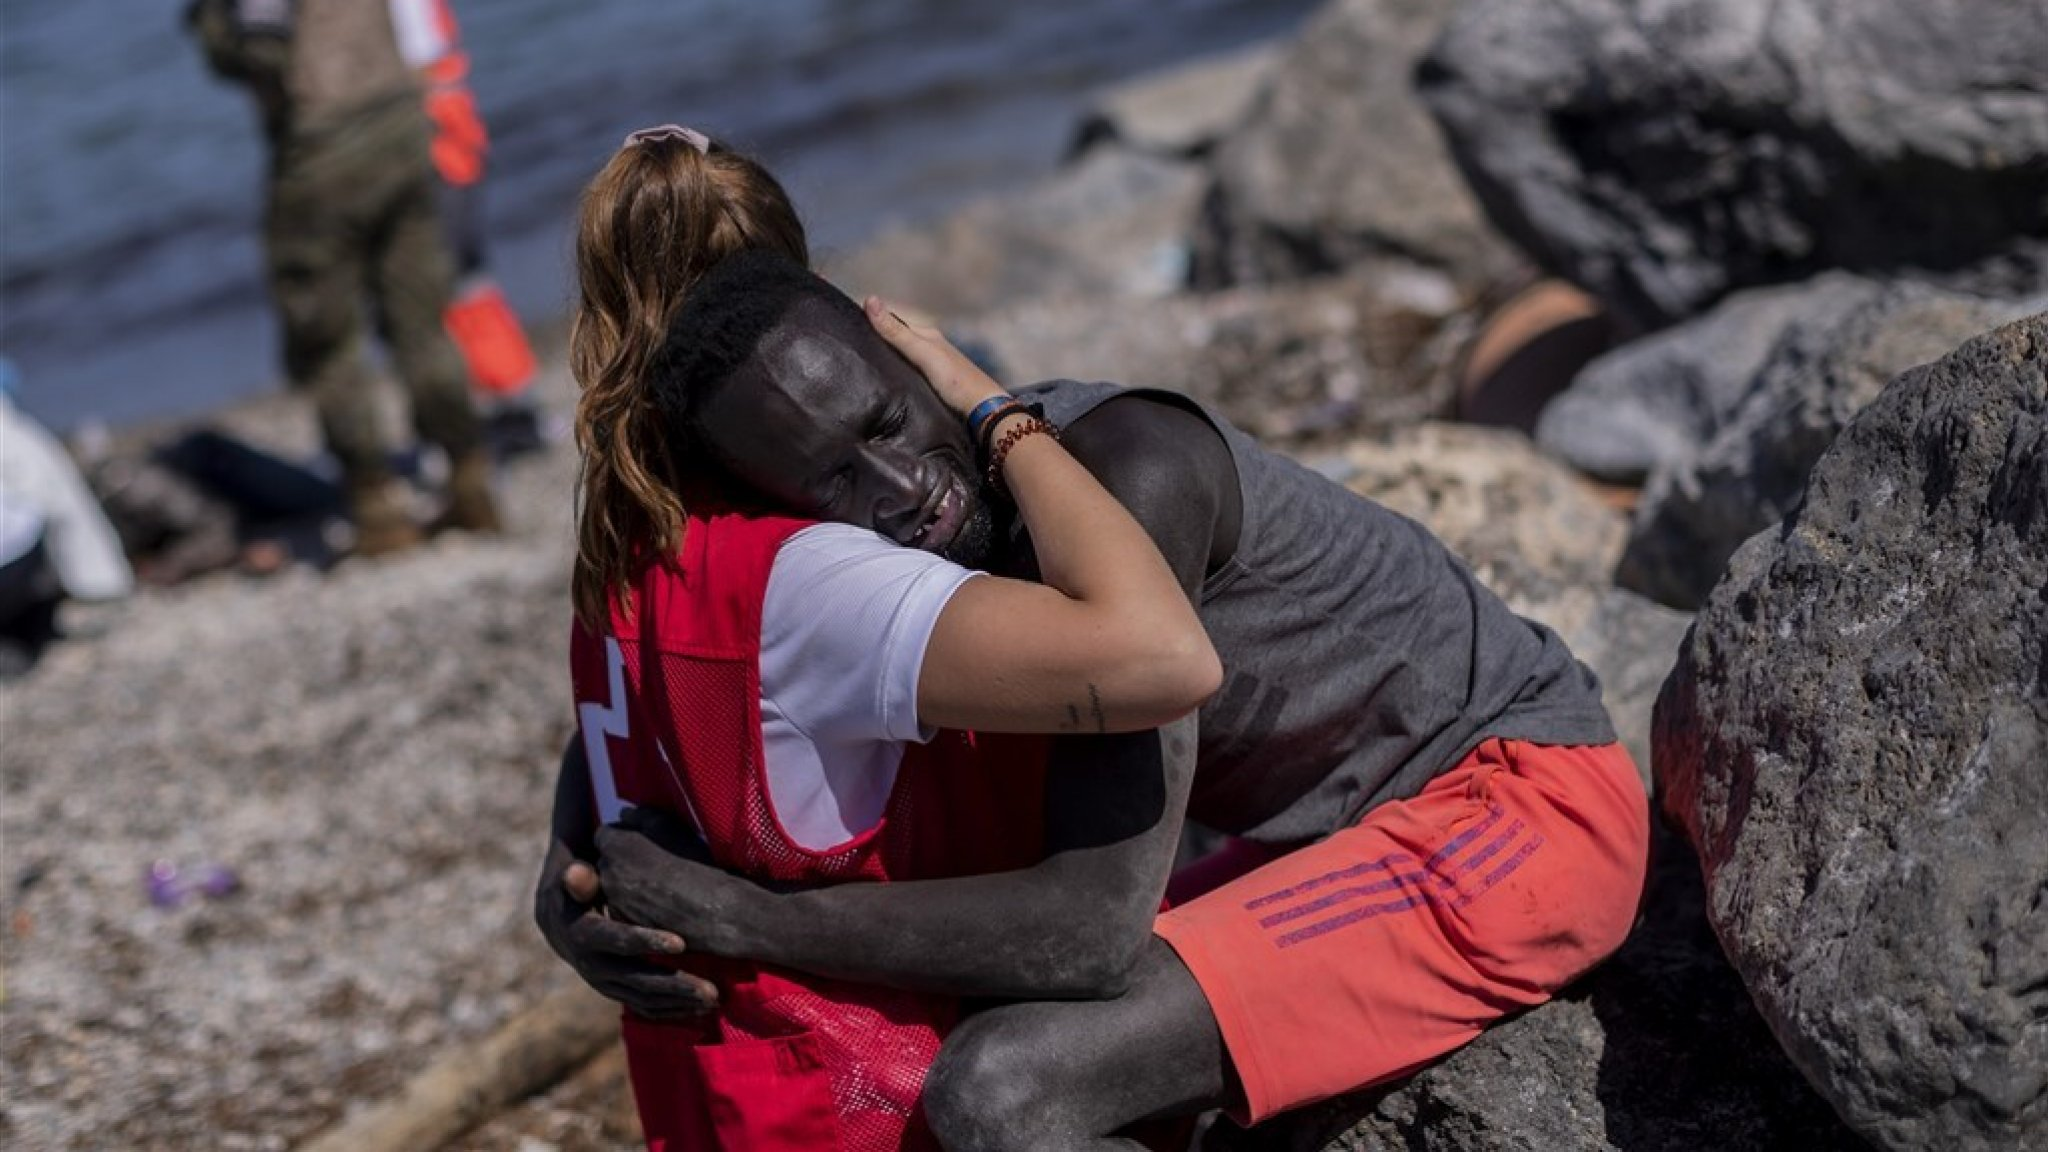 Aid worker consoles a refugee near Ceuta: 'a symbol of hope'